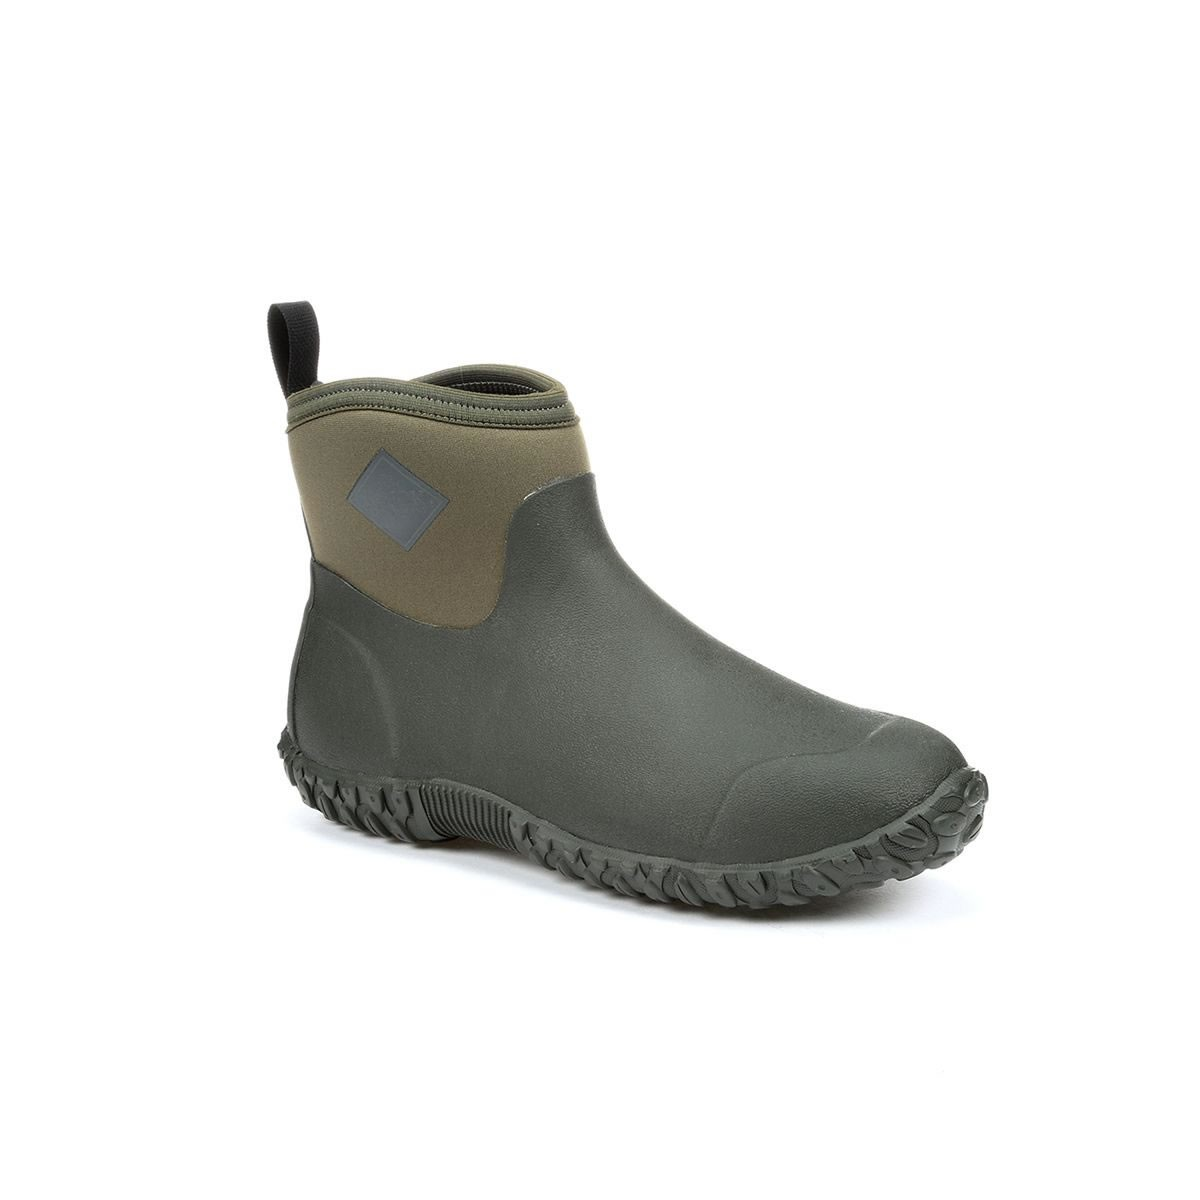 Muck Boot Mens Muckster Ankle Moss Size 13 UK